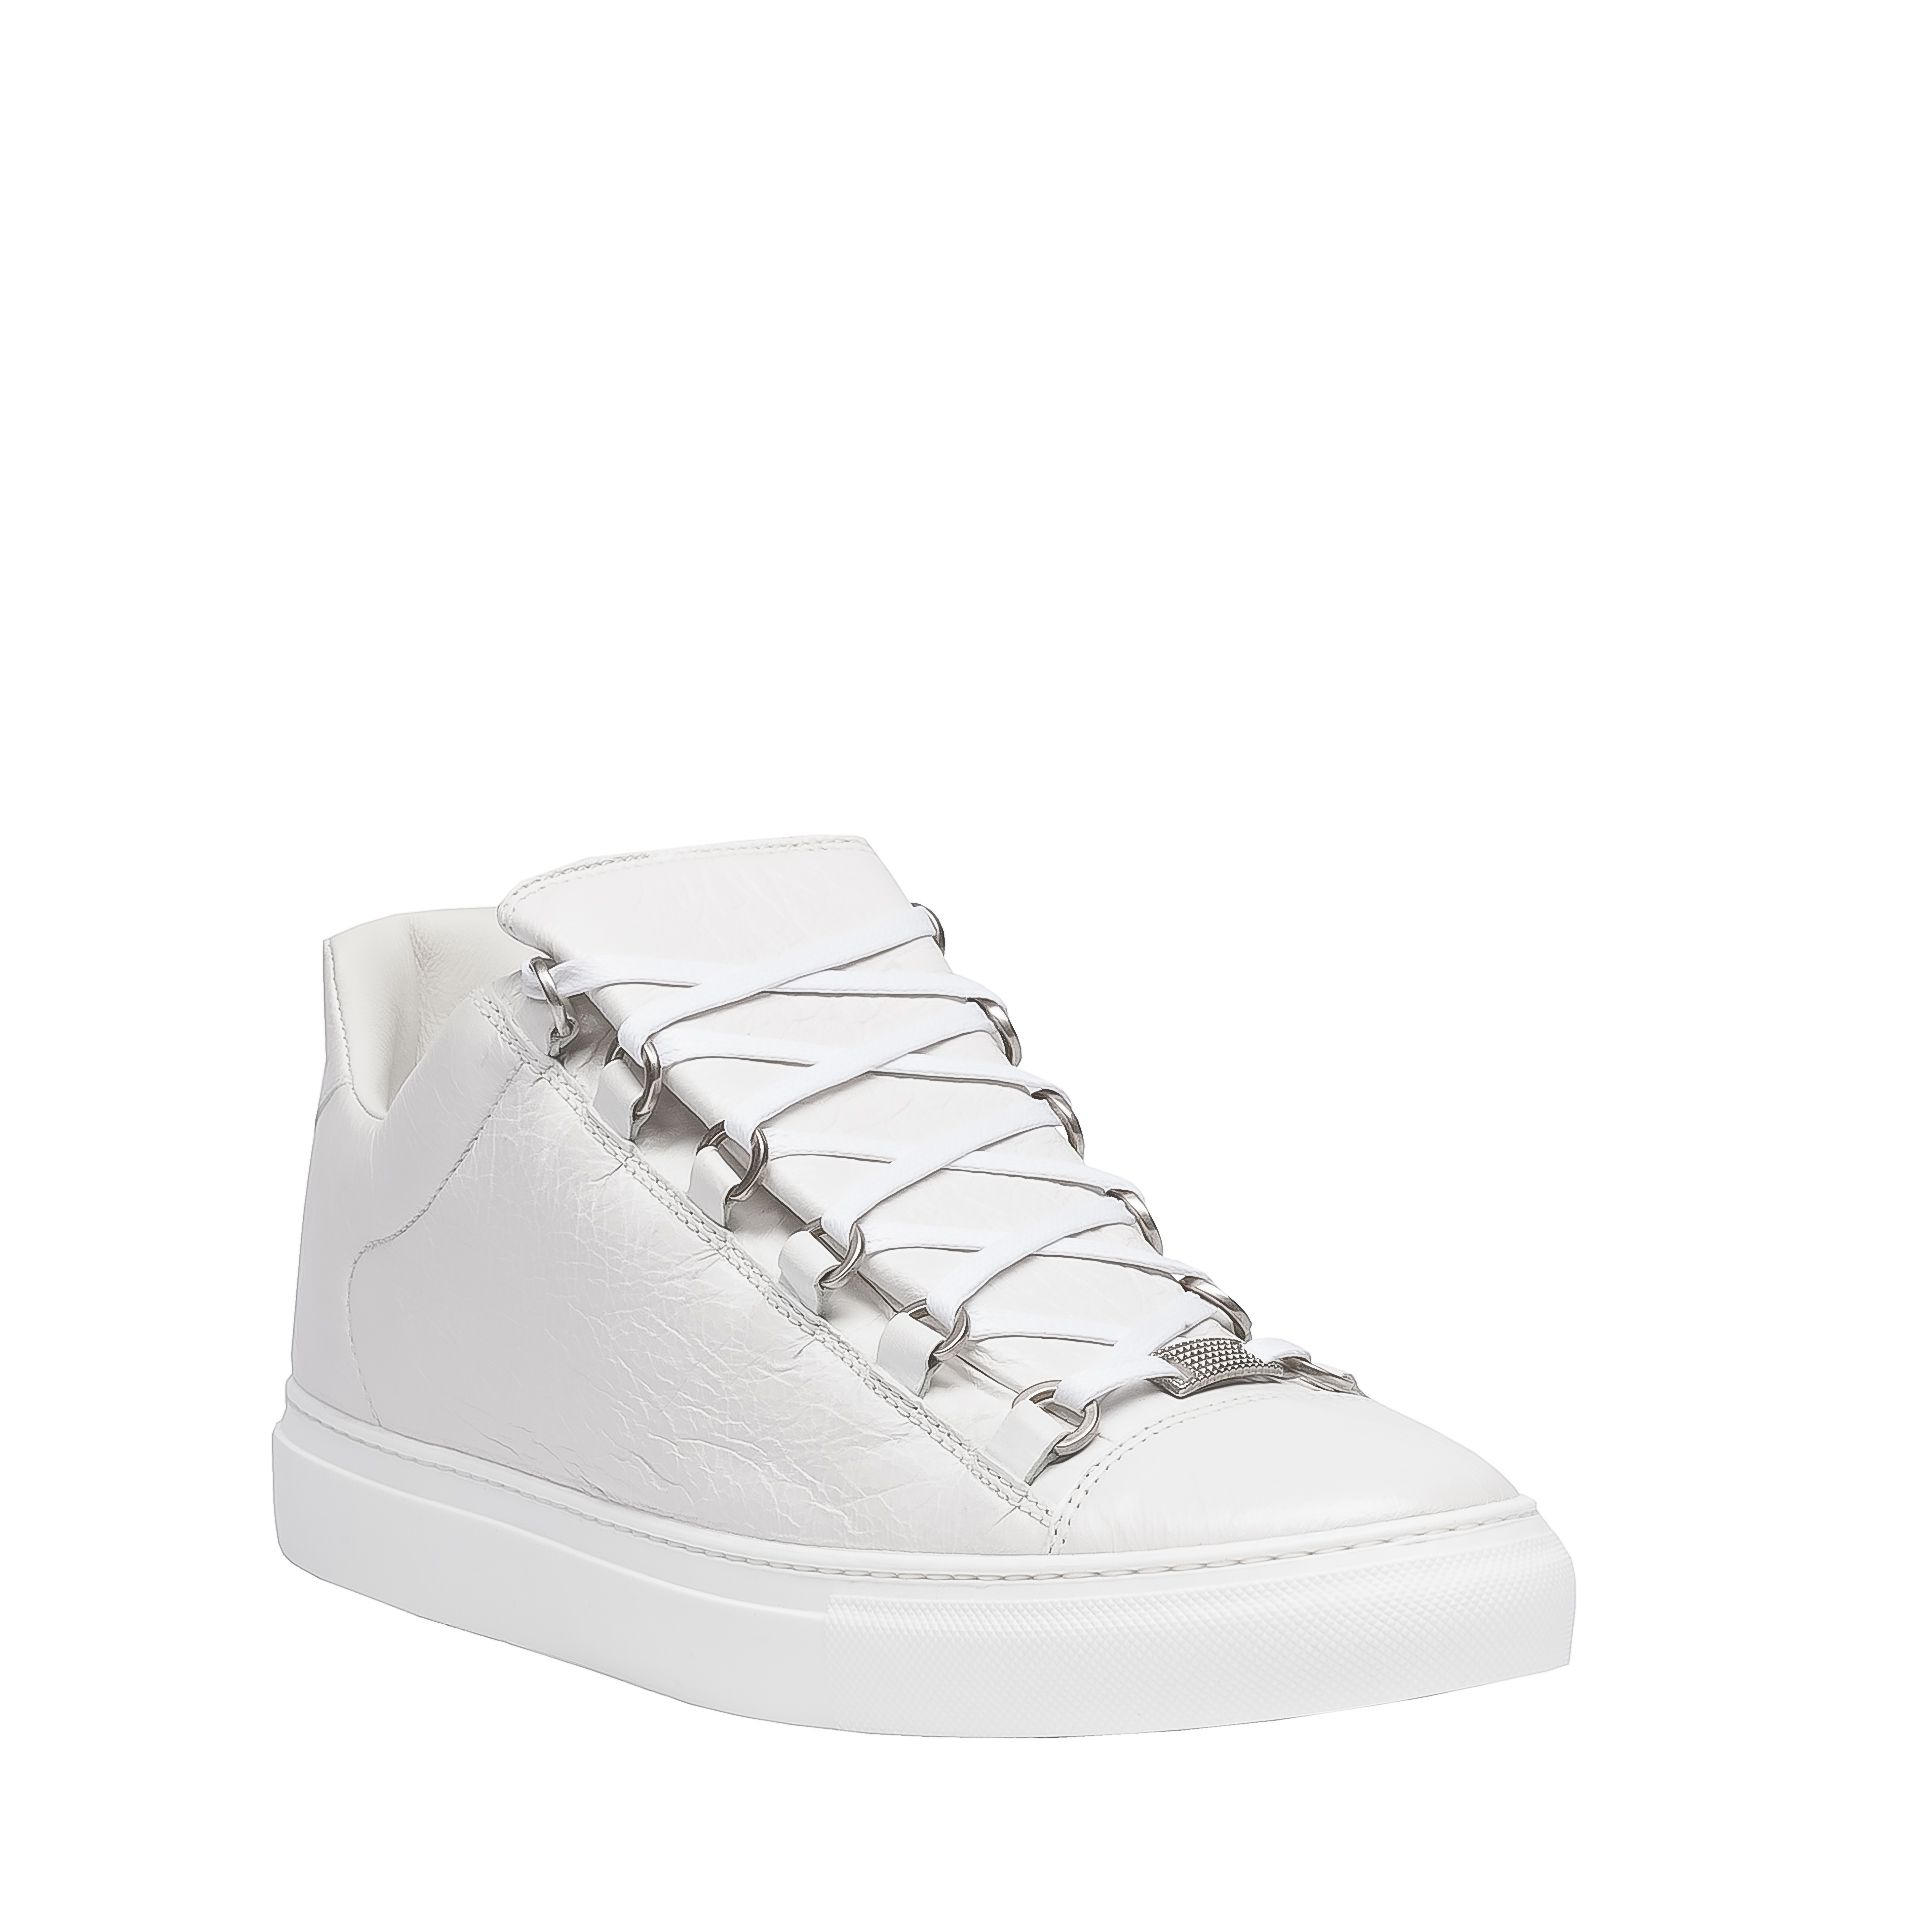 Balenciaga Arena Low Sneakers In White For Men Extra